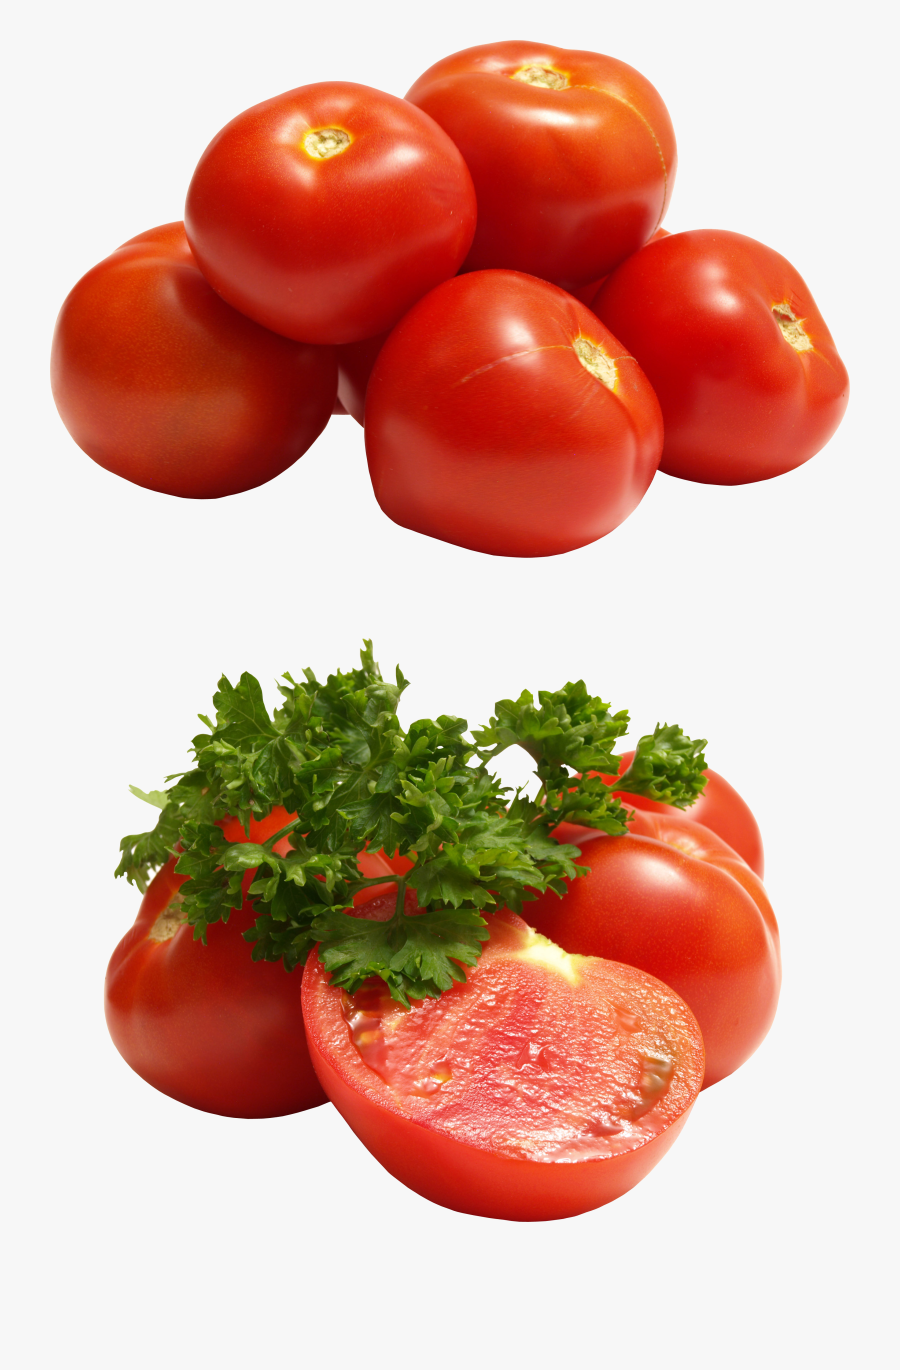 Red Png Image Purepng - Cherry Tomato Png Transparent, Transparent Clipart